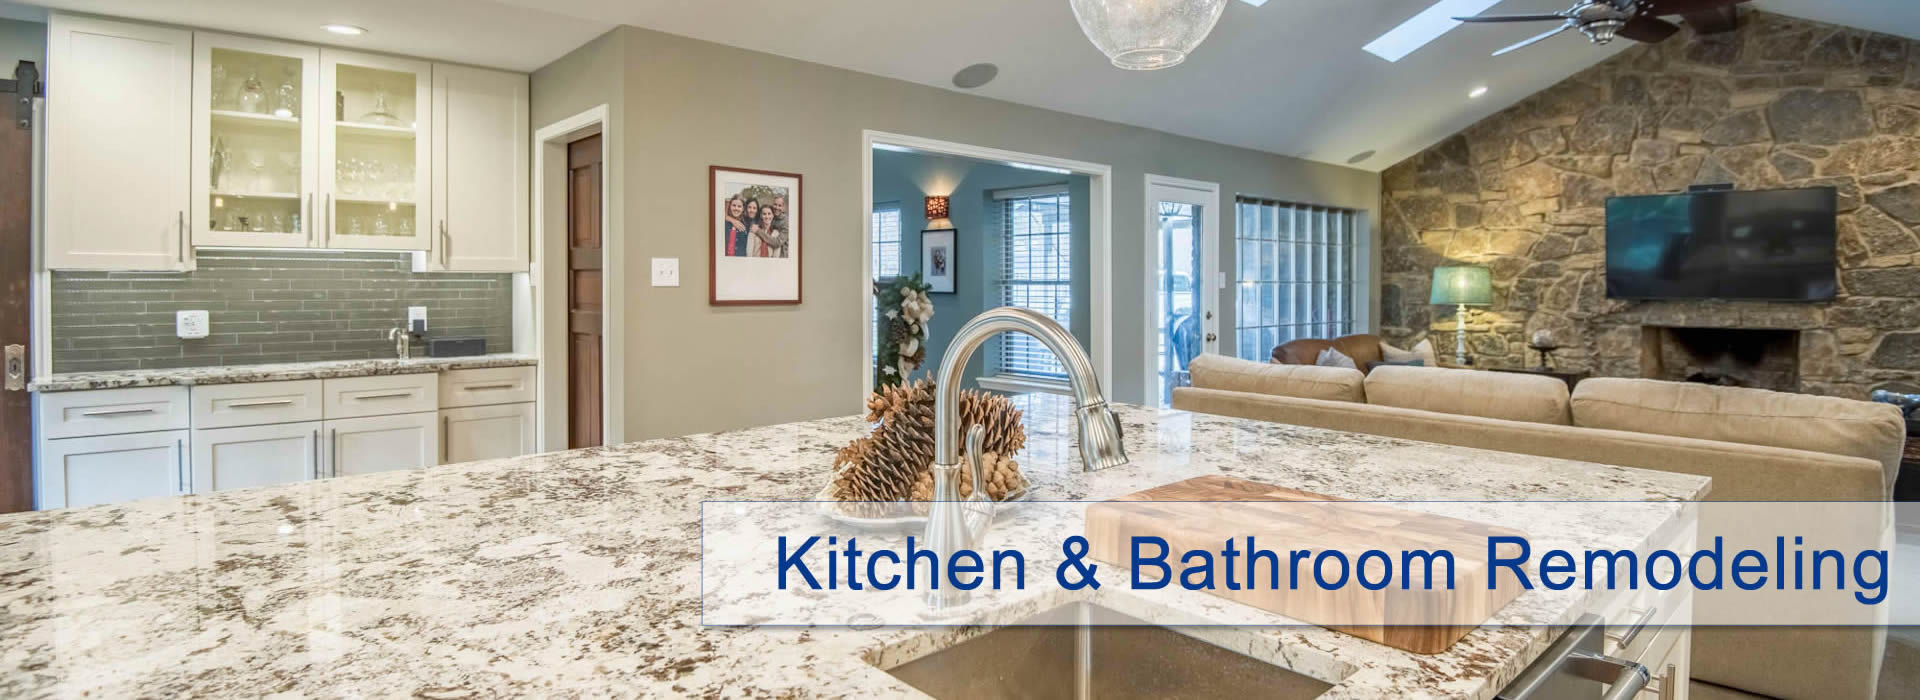 Dallas Bathroom Remodel kitchen remodeling dallas | bathroom remodeling fort worth